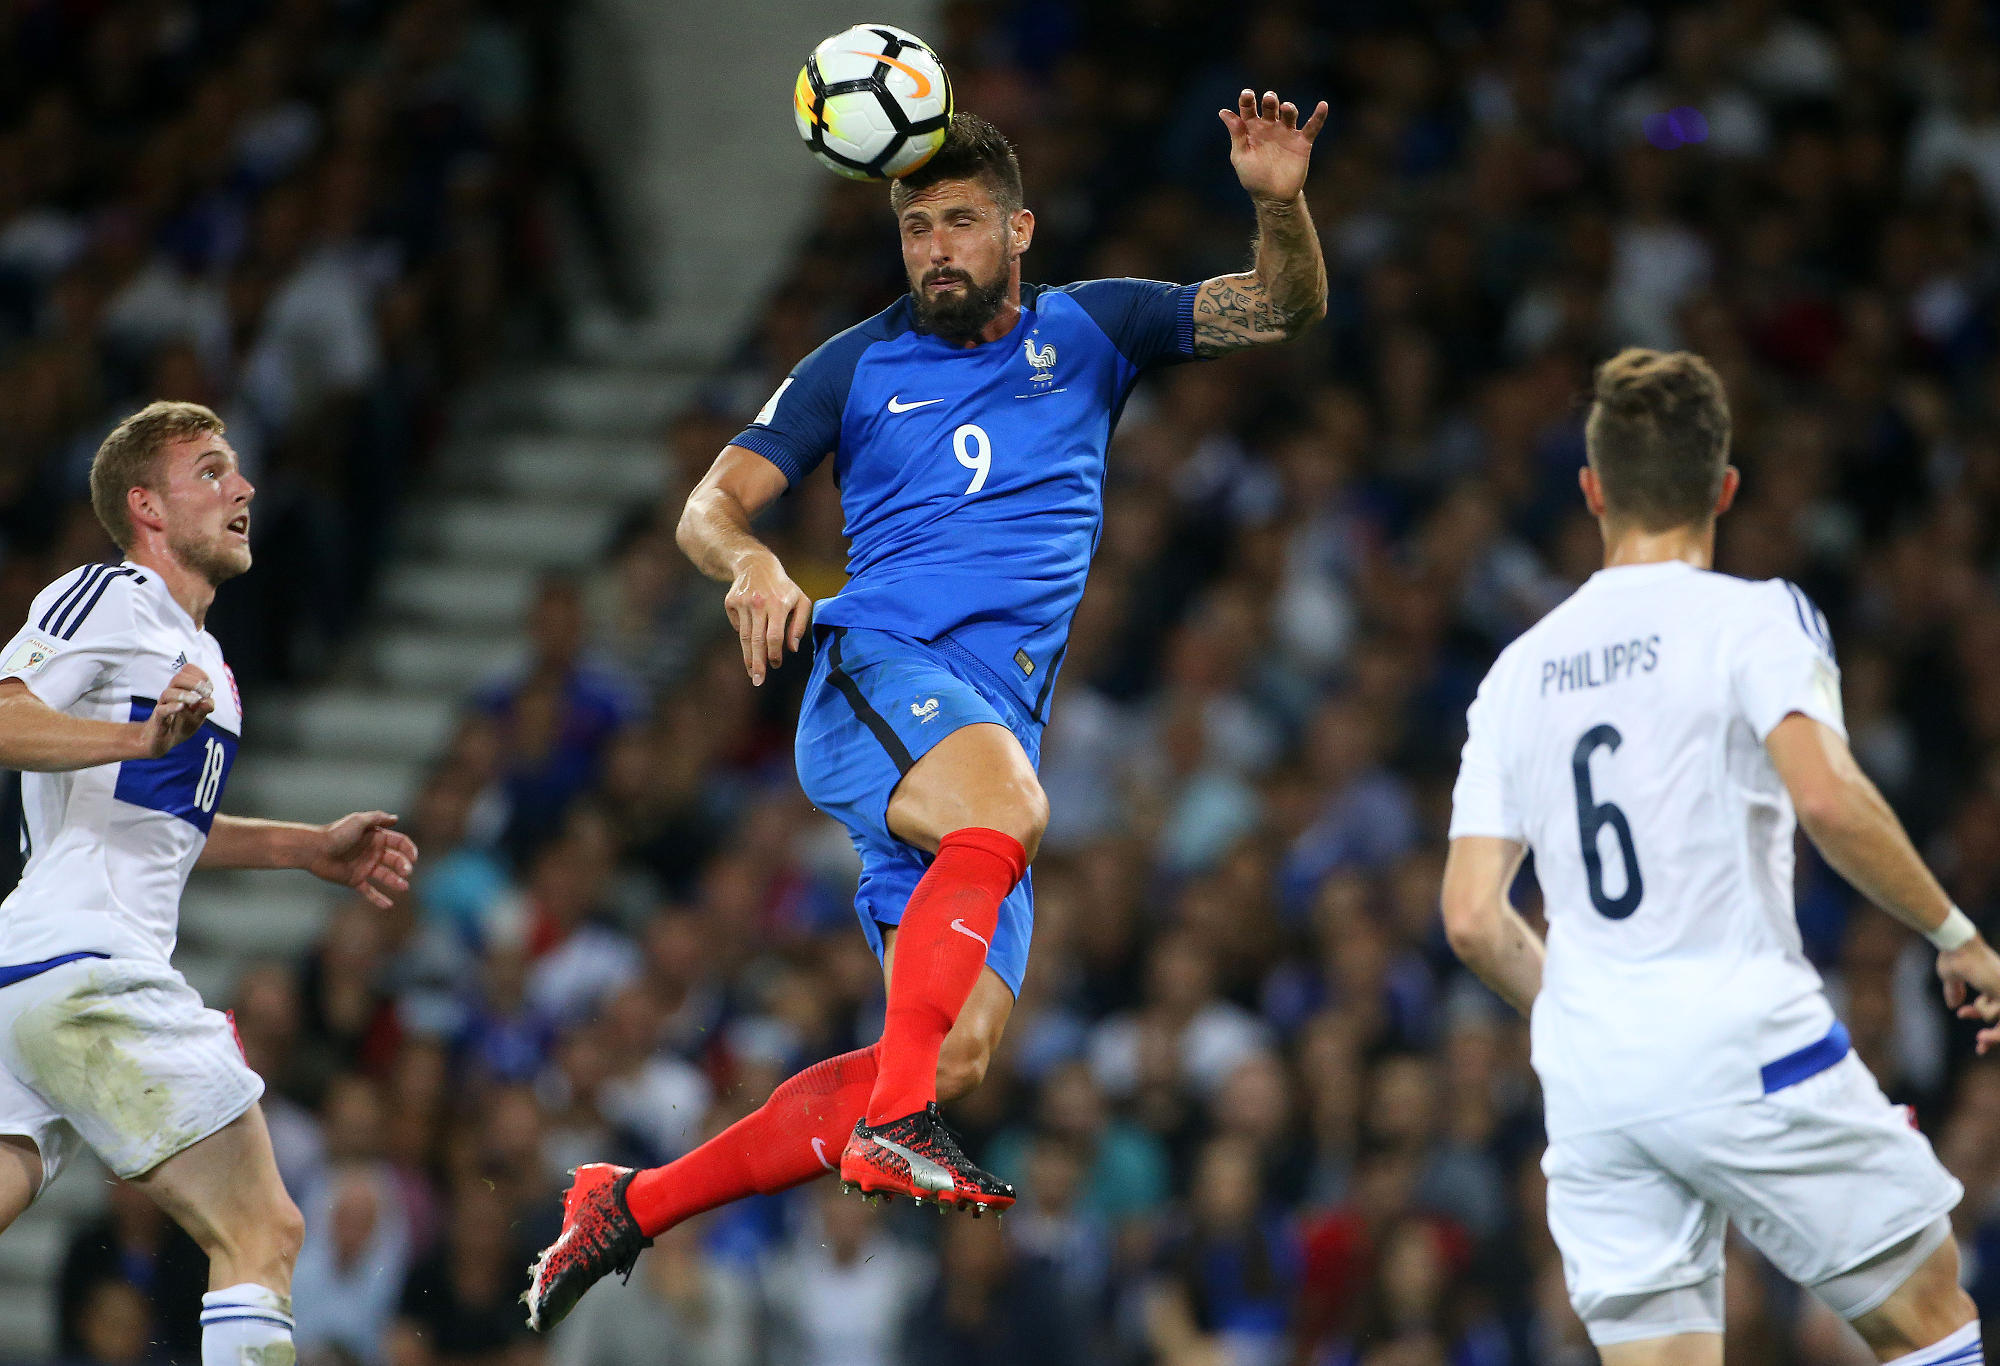 France's Oliver Giroud heads the ball.